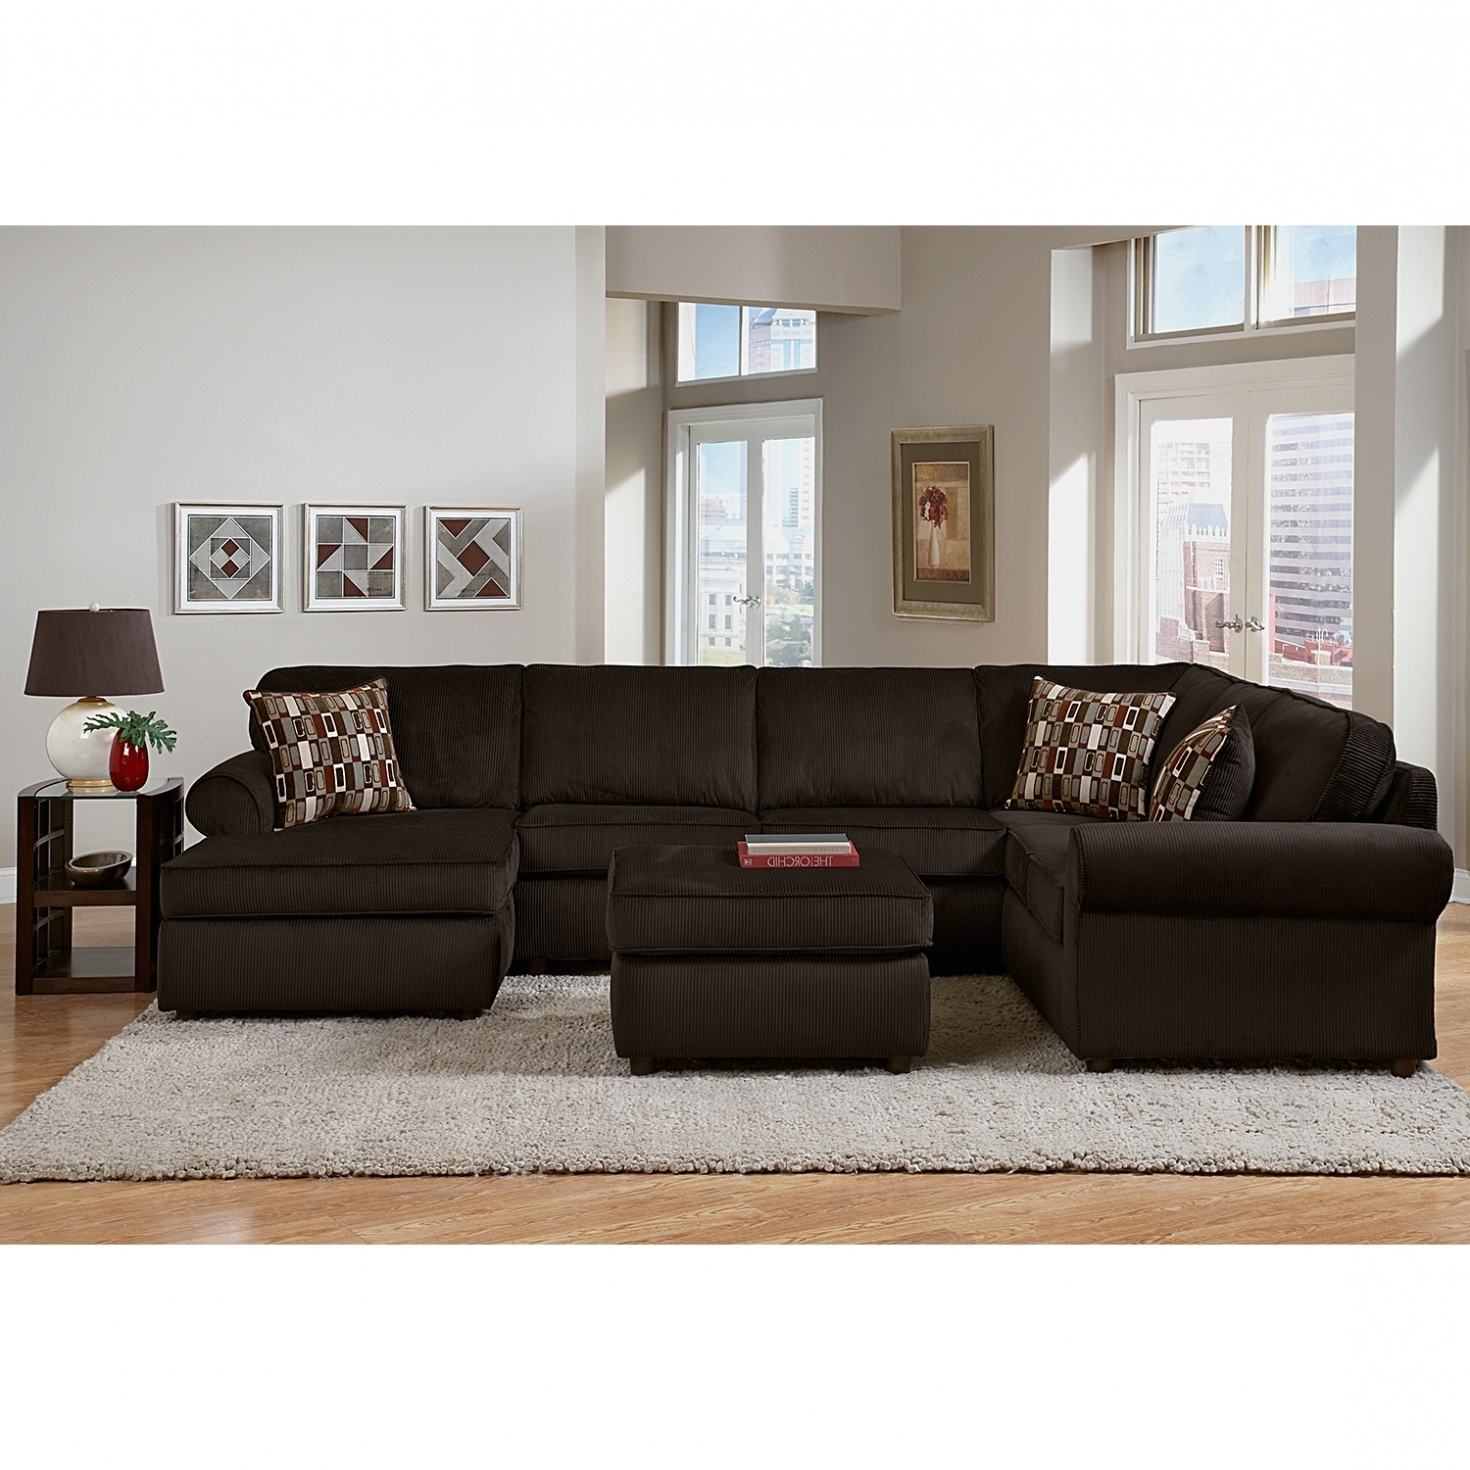 Favorite Furniture: New Value City Sectional Sofa 32 For Living Room Sofa Intended For Value City Sofas (View 3 of 15)